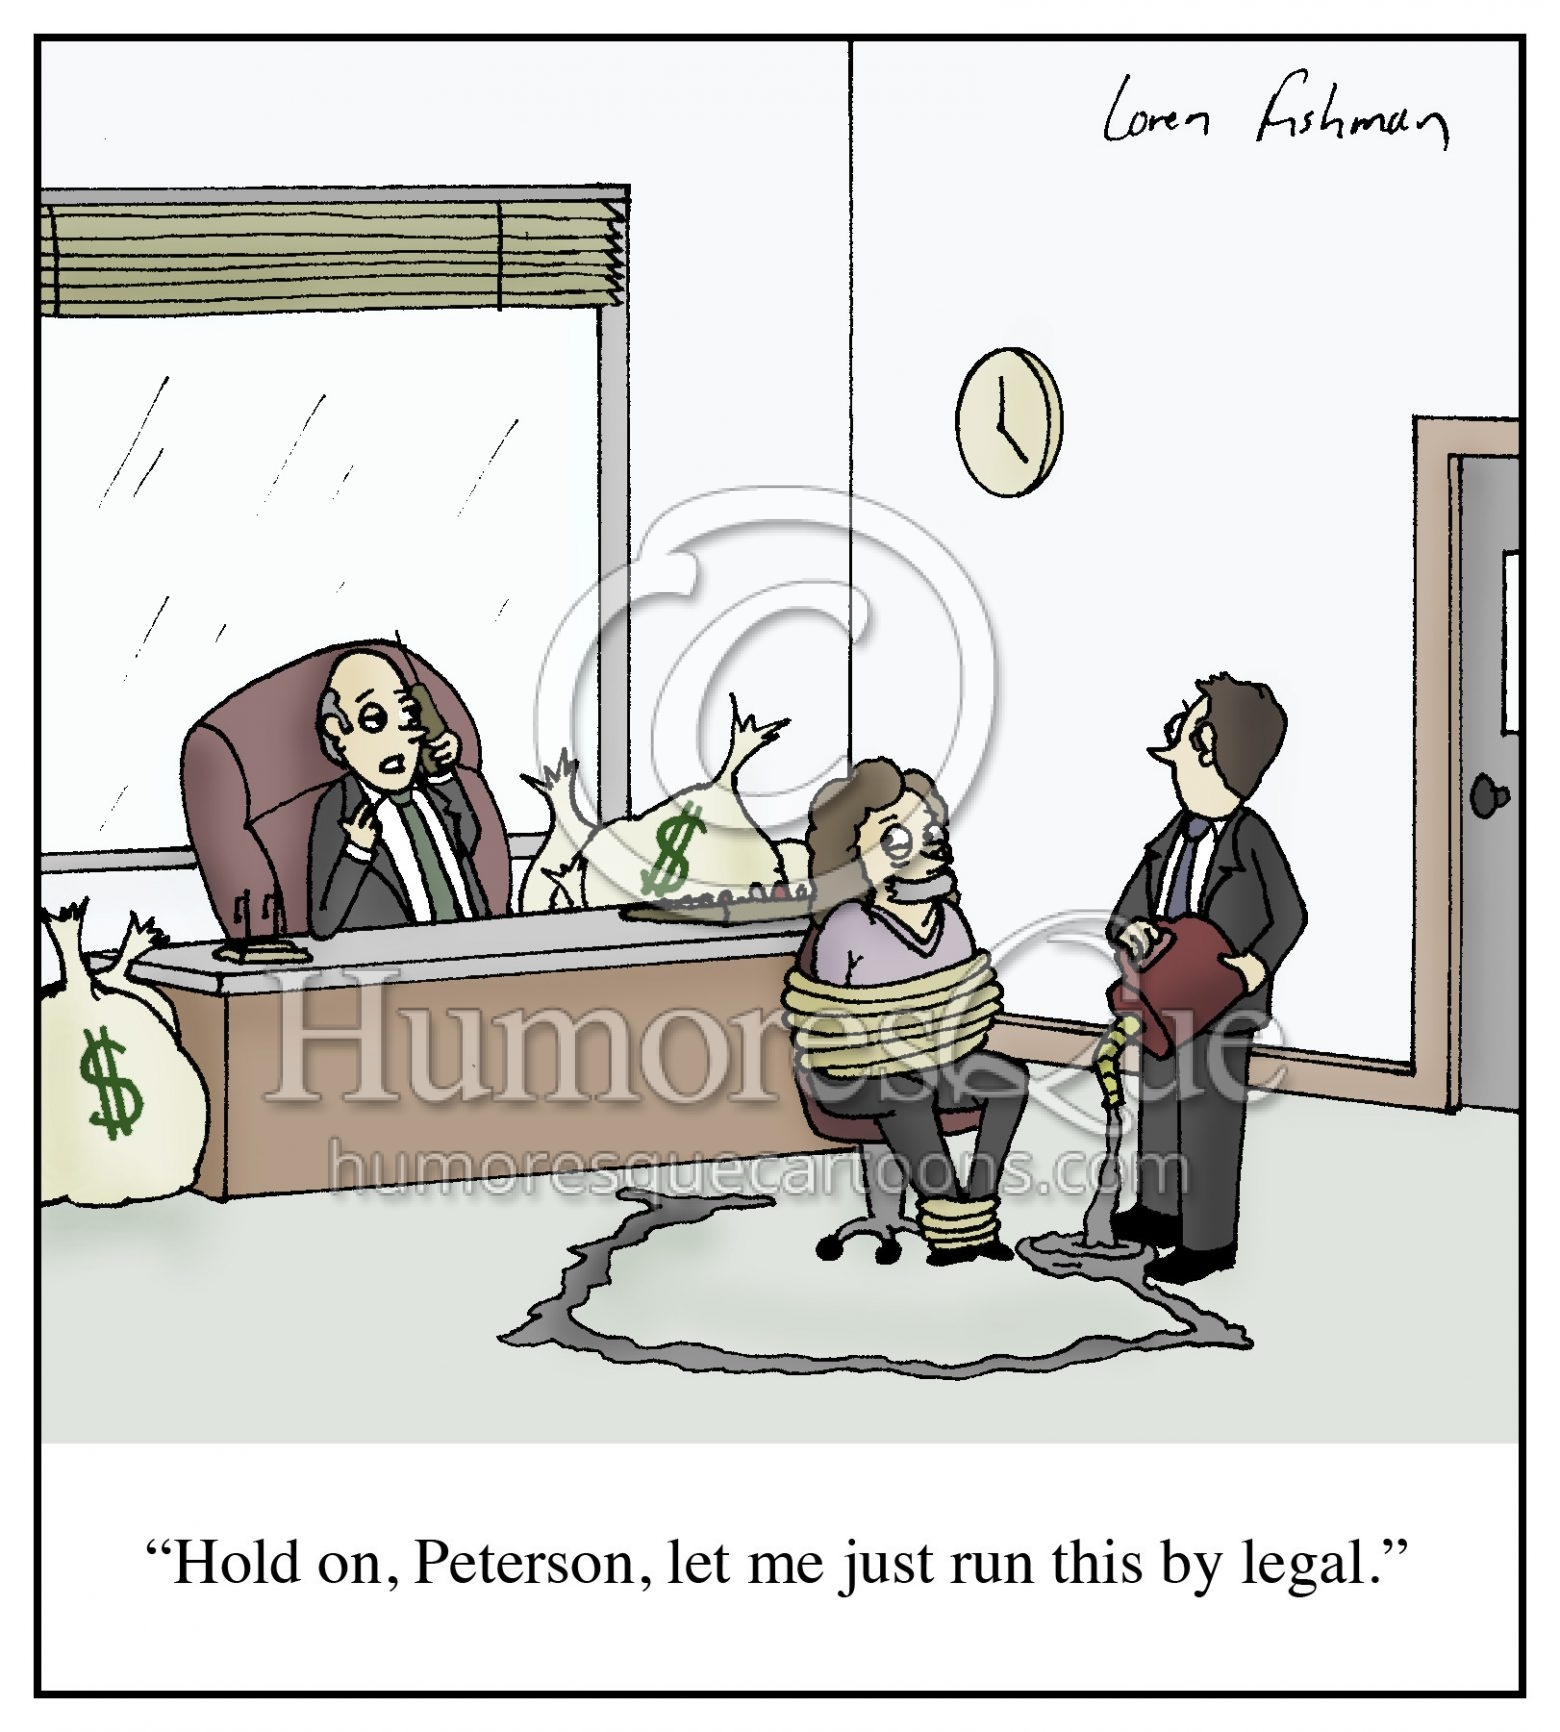 legal department corporate crime and corruption cartoon